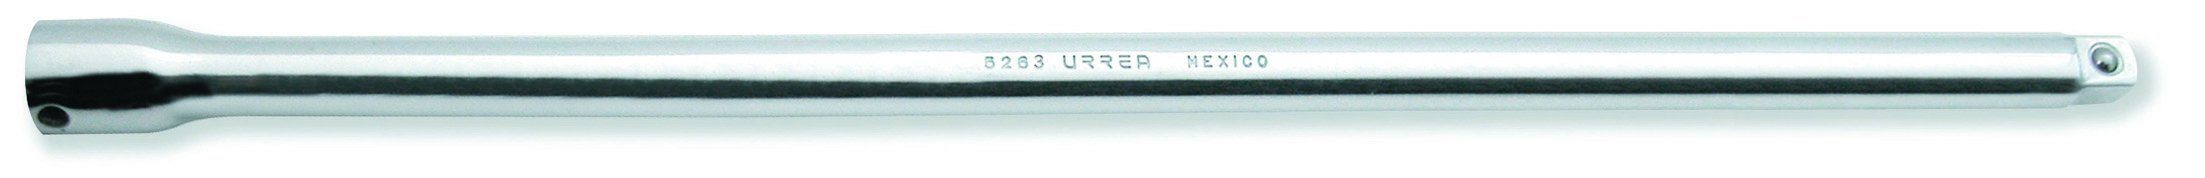 Urrea 5263 3/8-Inch Drive 18-Inch Socket Extension